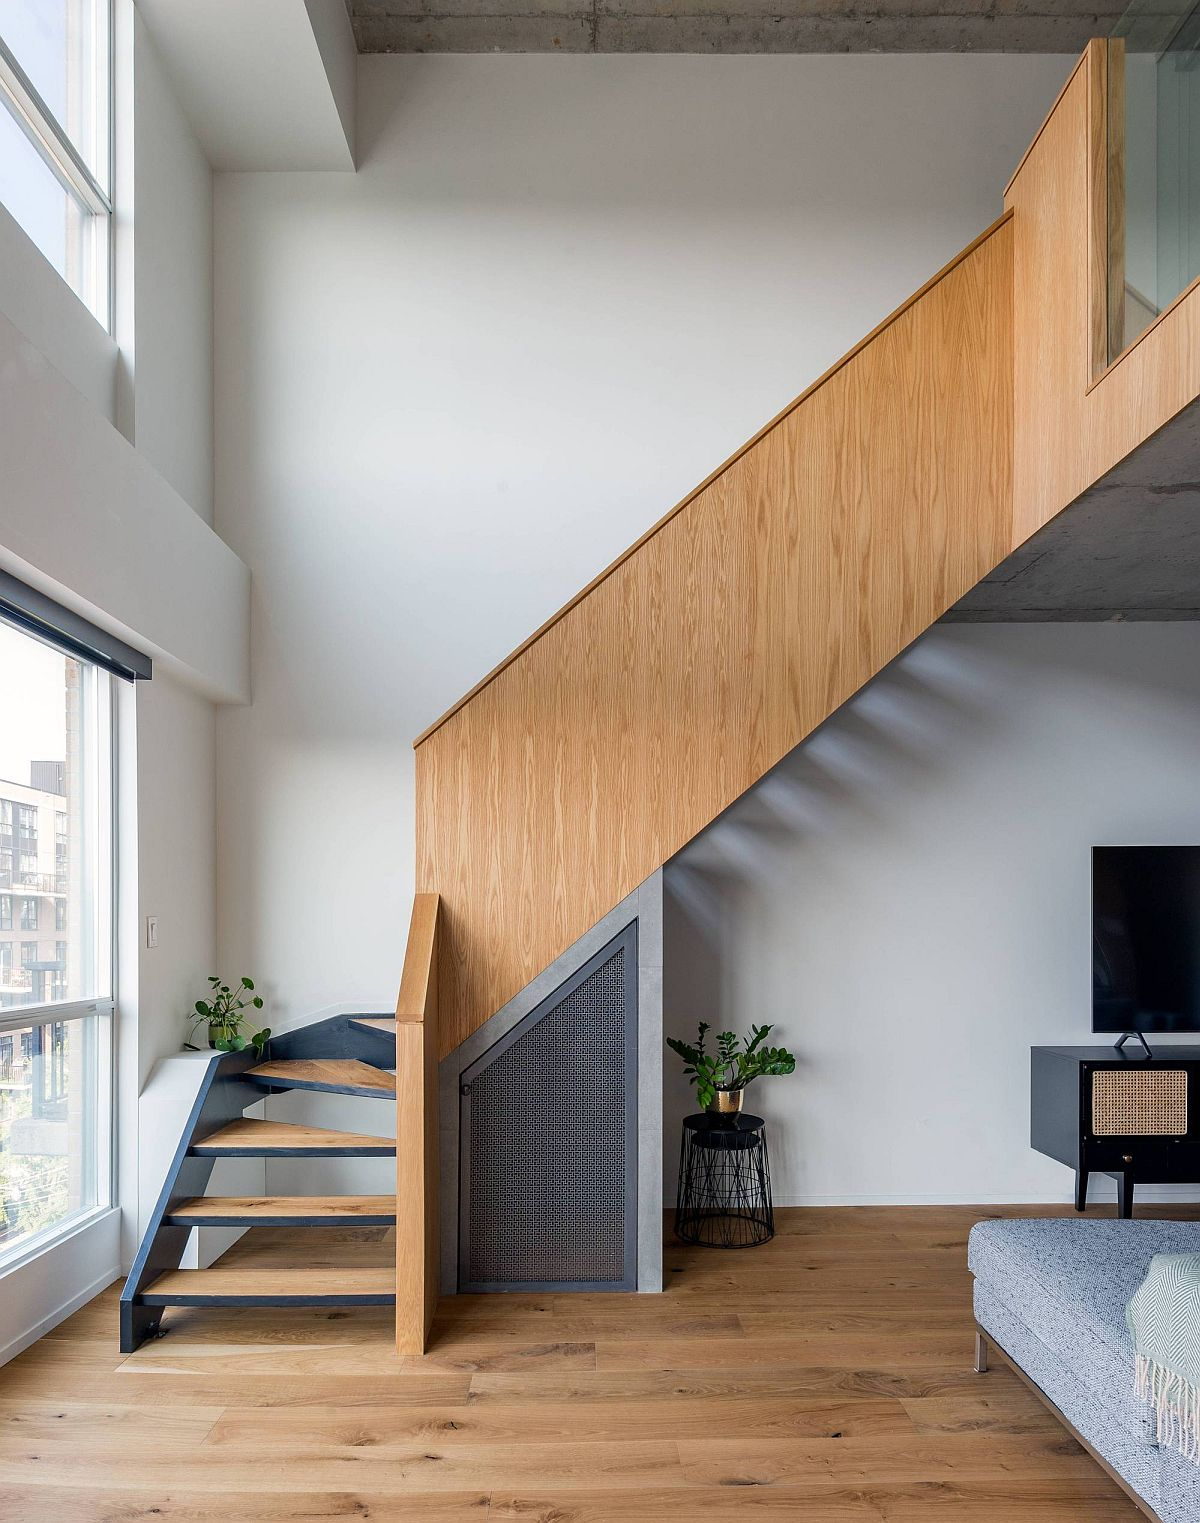 Reworked staircase inside the loft home with stained oak guard and metal steps